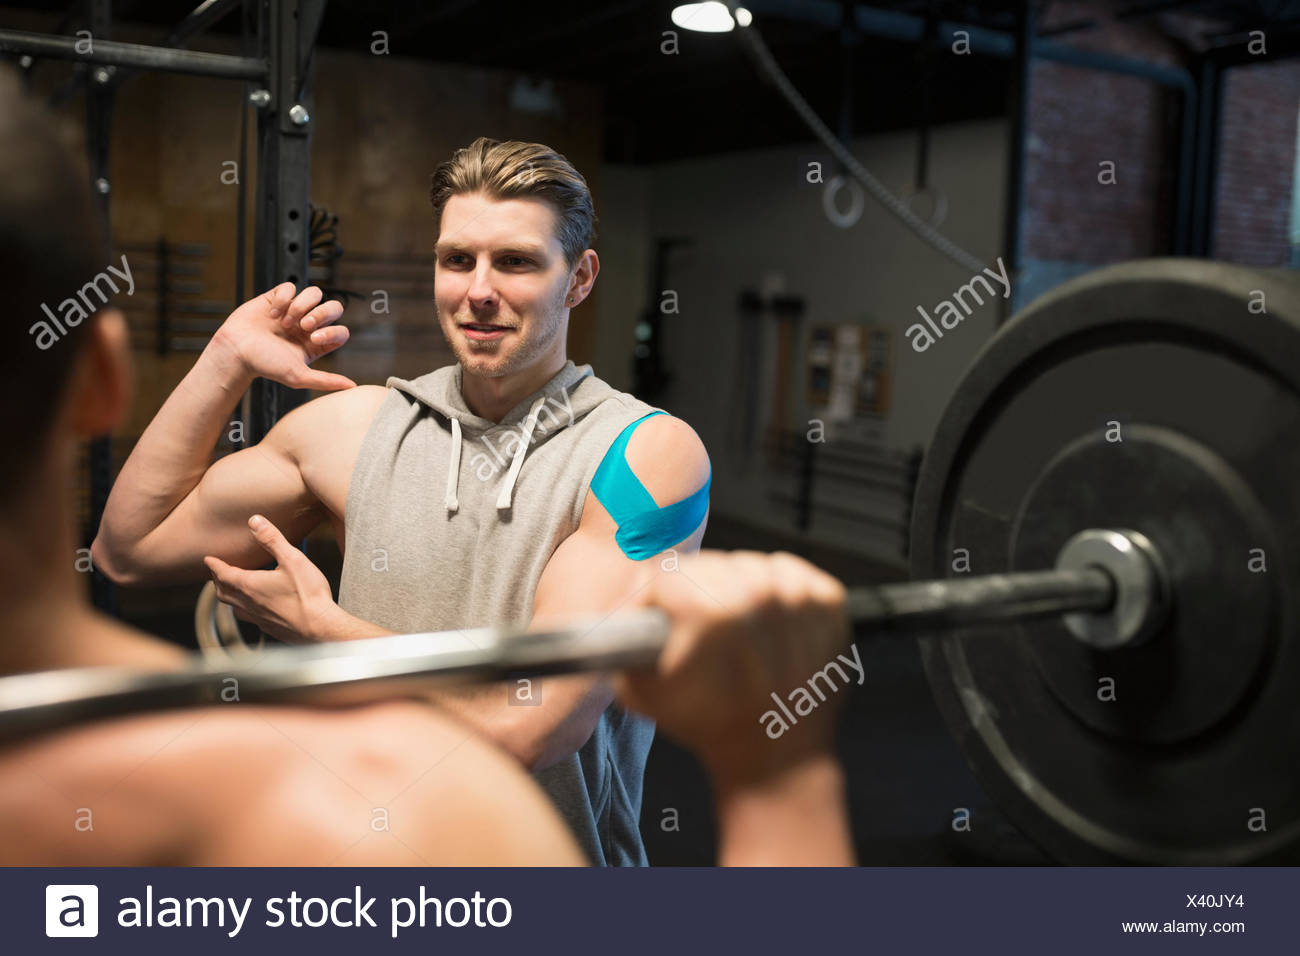 Personal trainer guiding man weightlifting barbell at gym - Stock Image